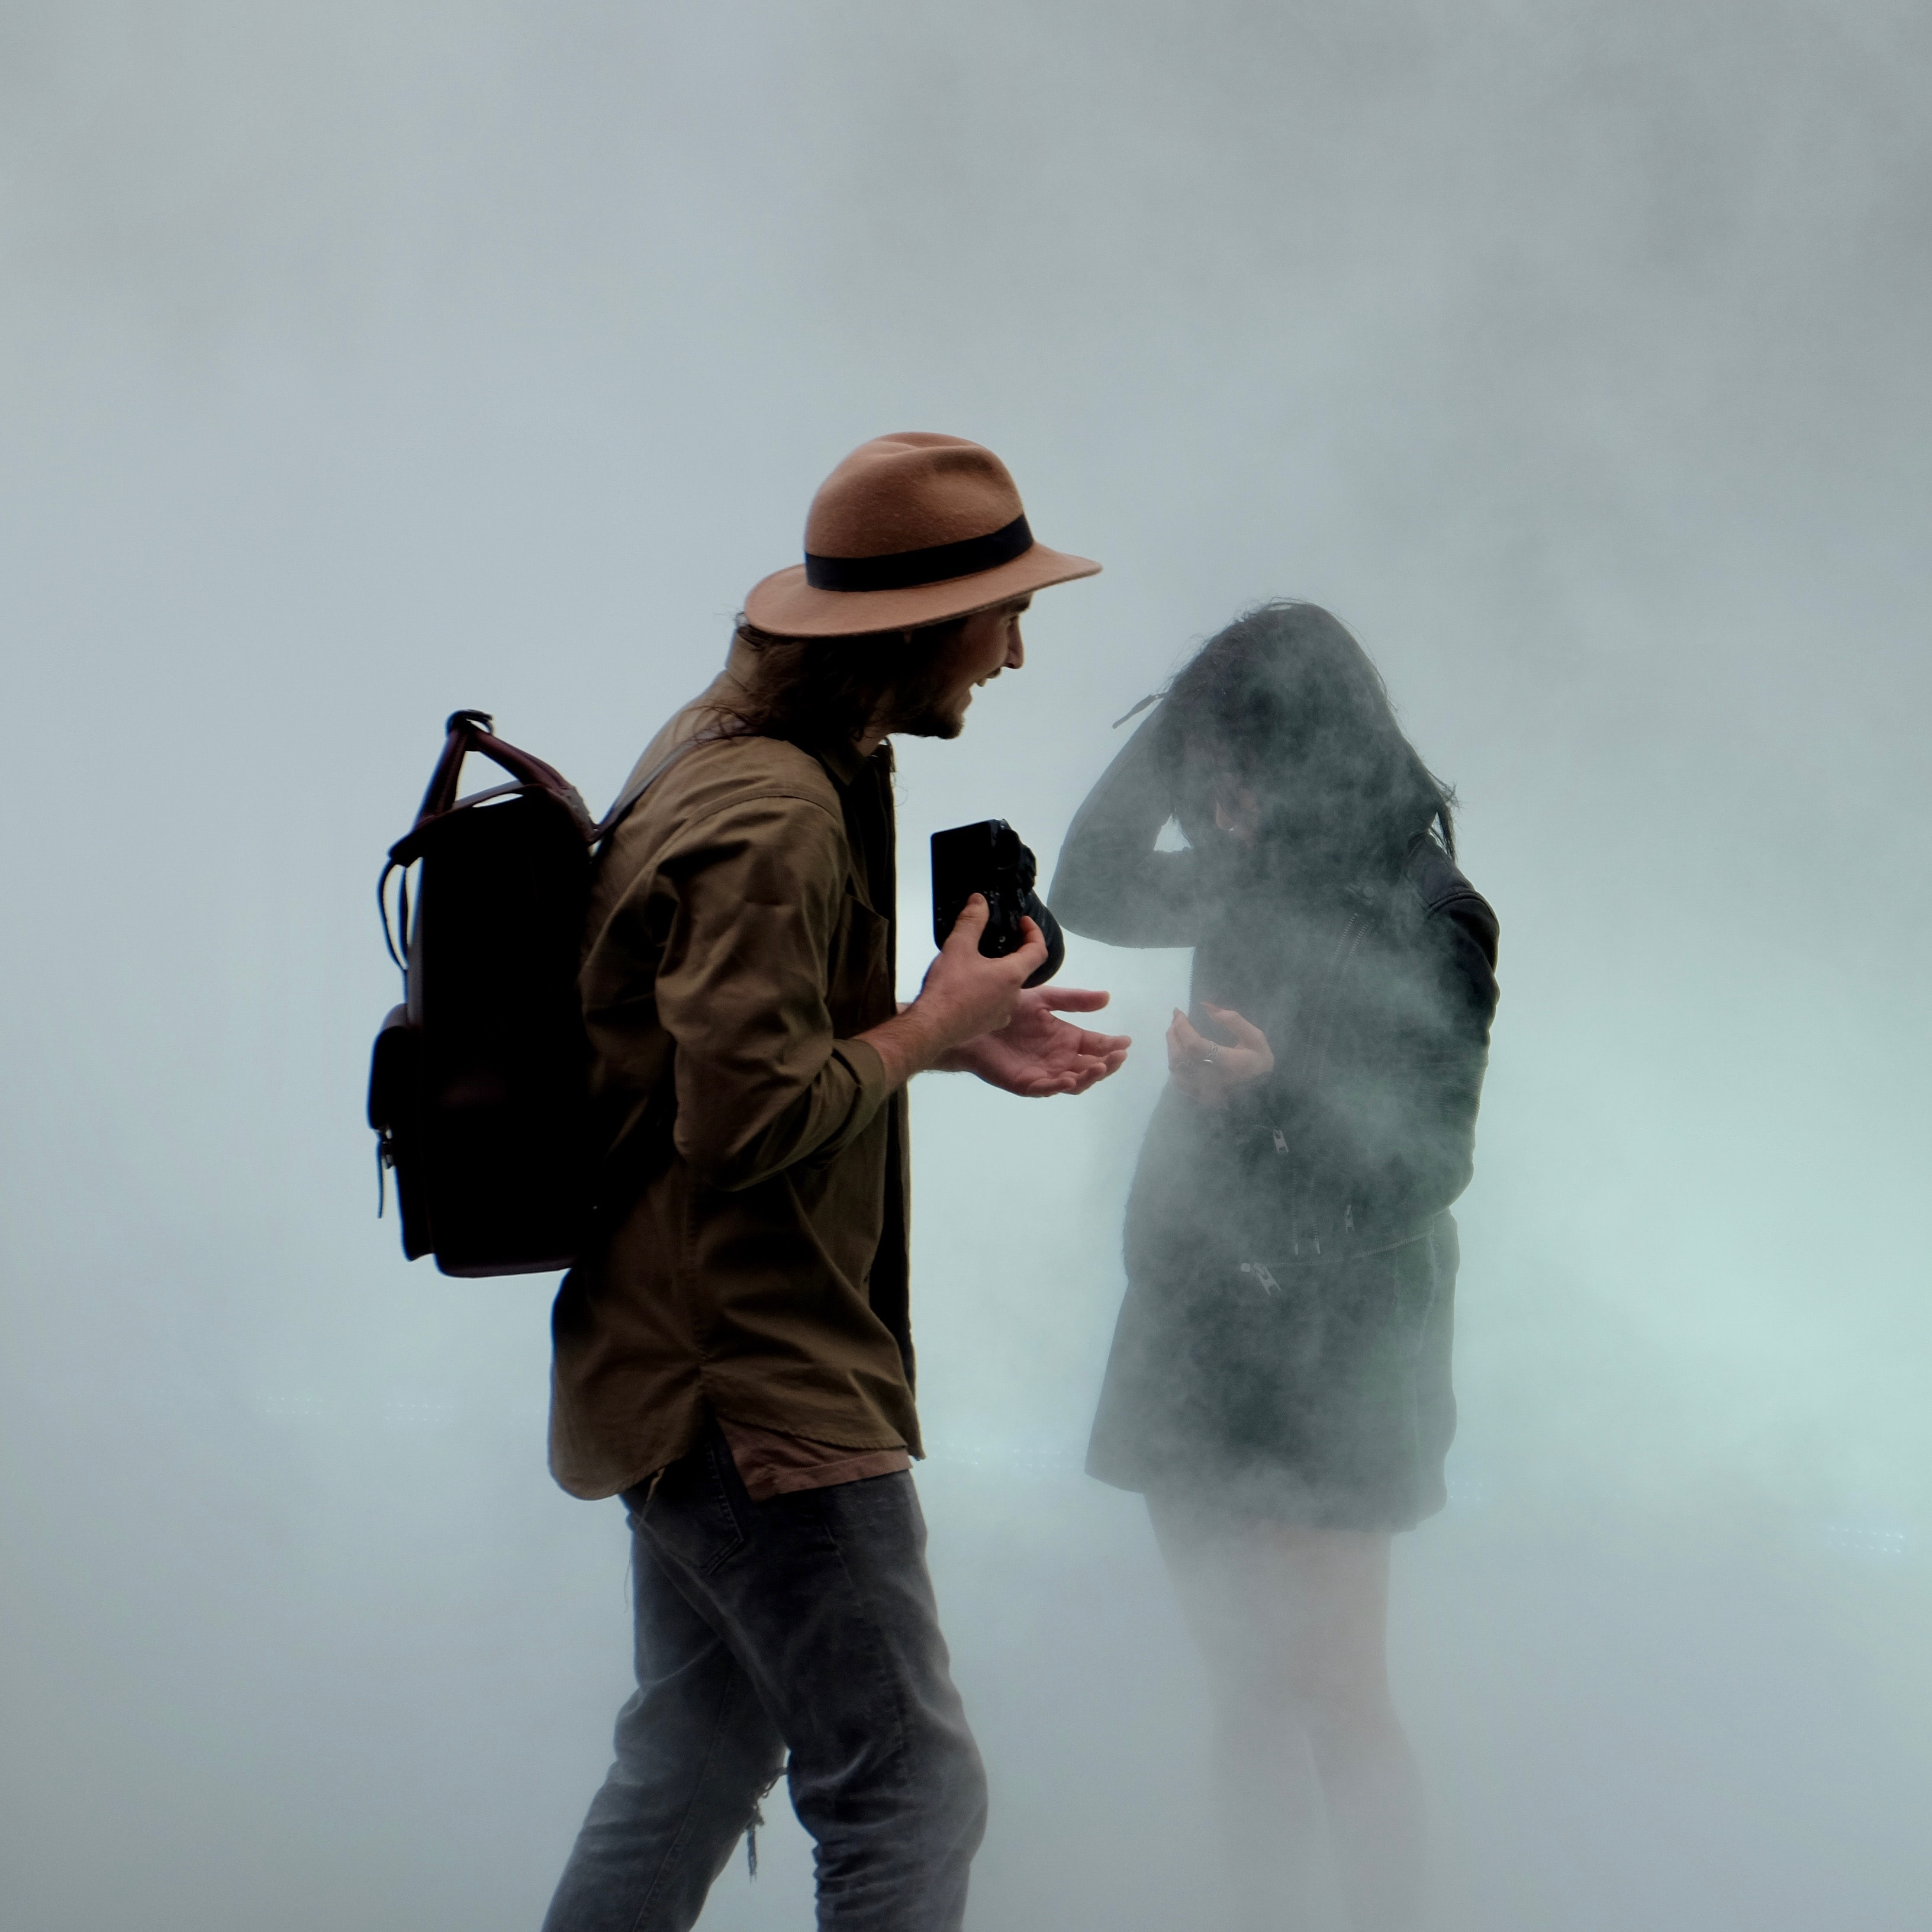 Man and woman in hiking gear laugh in the fog